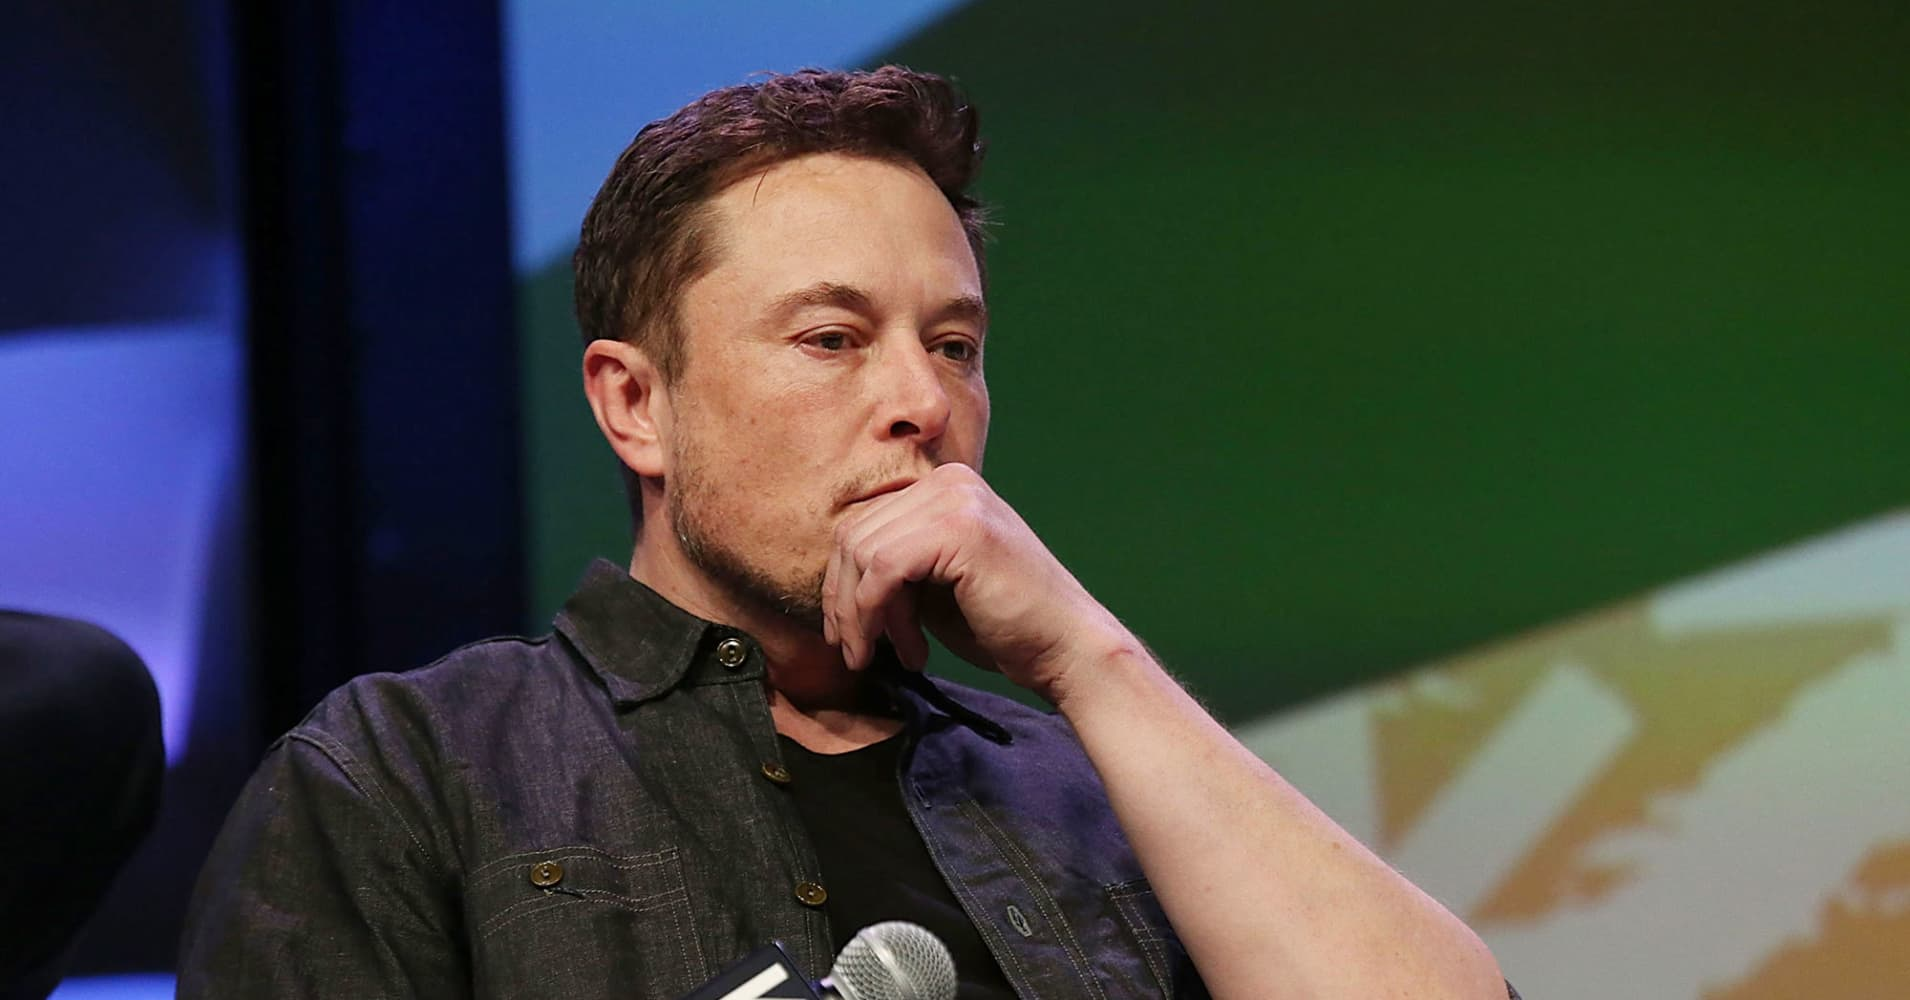 Elon Musk speaks on stage during the Westworld Featured Session during SXSW at Austin Convention Center on March 10, 2018 in Austin, Texas.